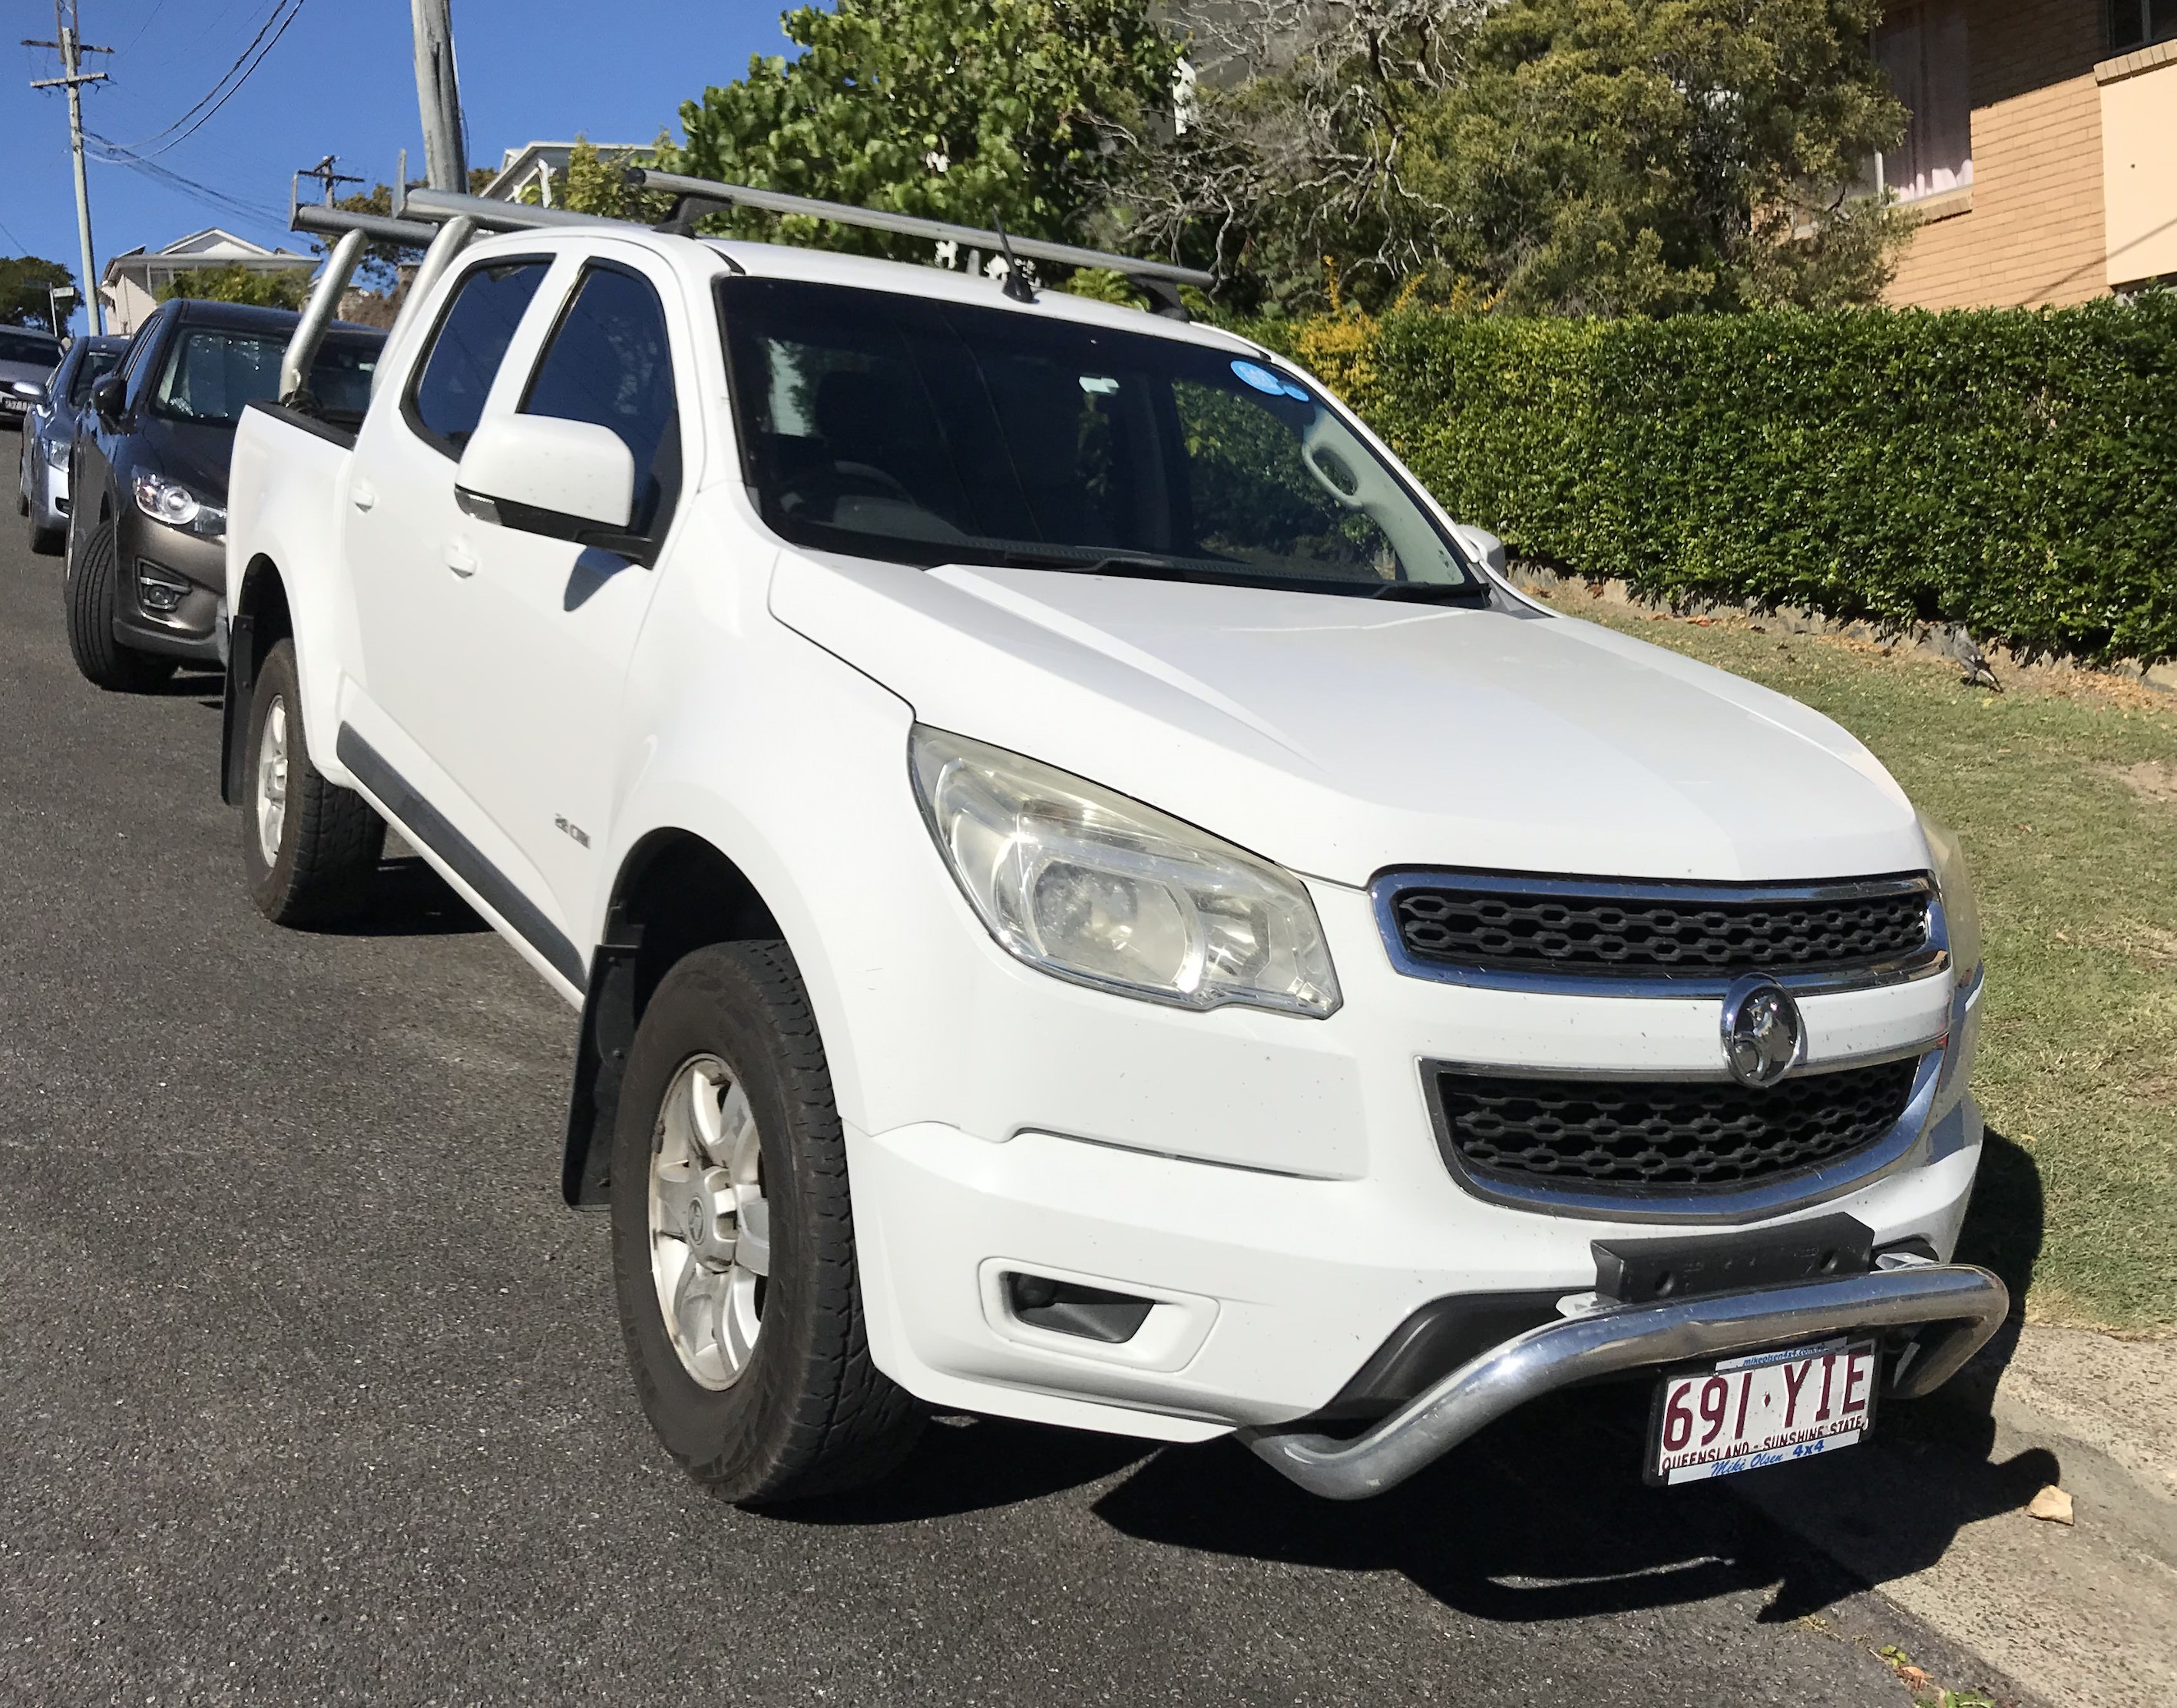 Picture of Rowan's 2012 Holden Colorado